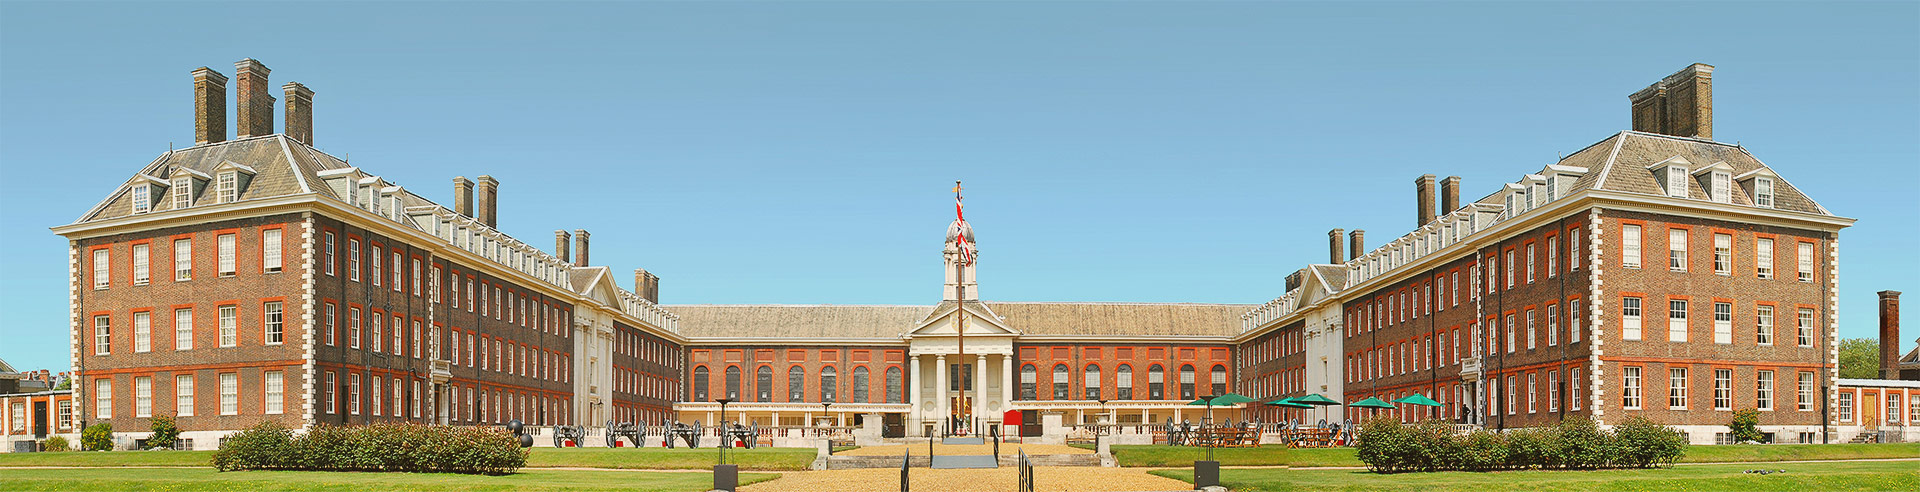 Book of Remembrance | Royal Hospital Chelsea